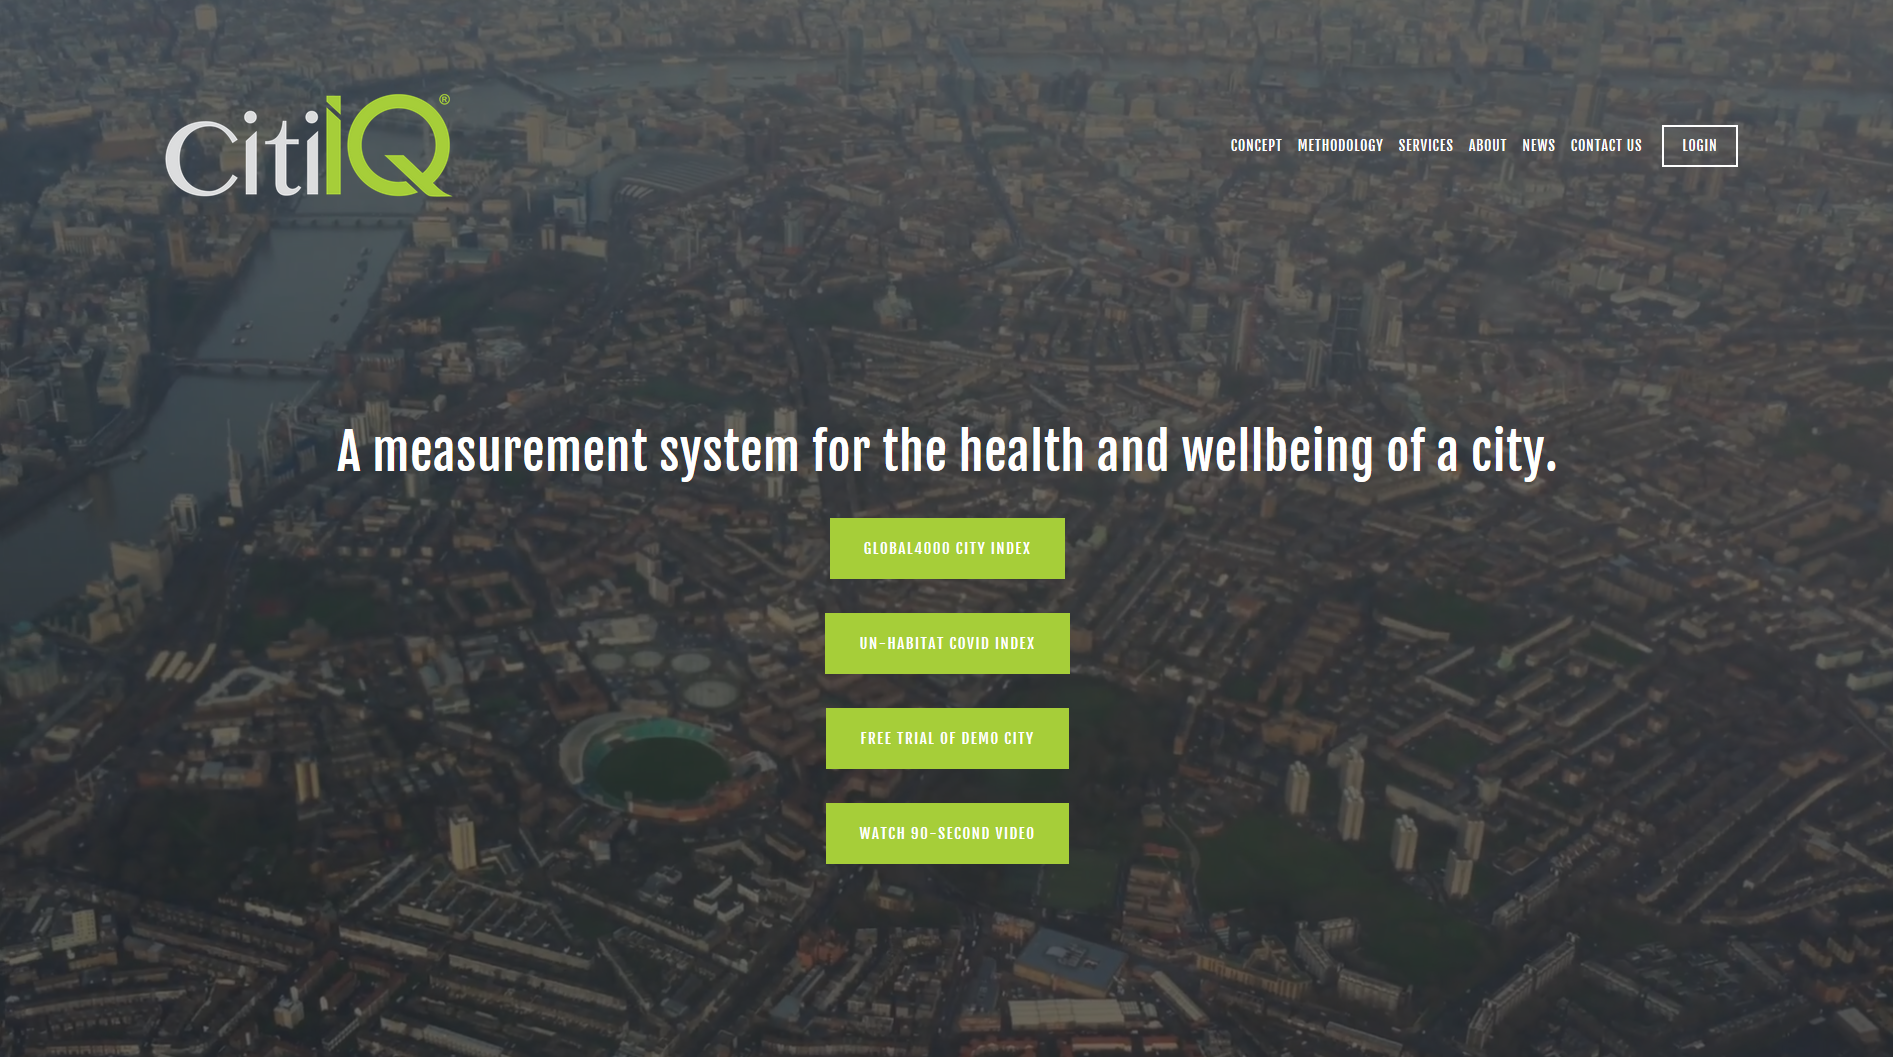 Image of CitiIQ website homepage with